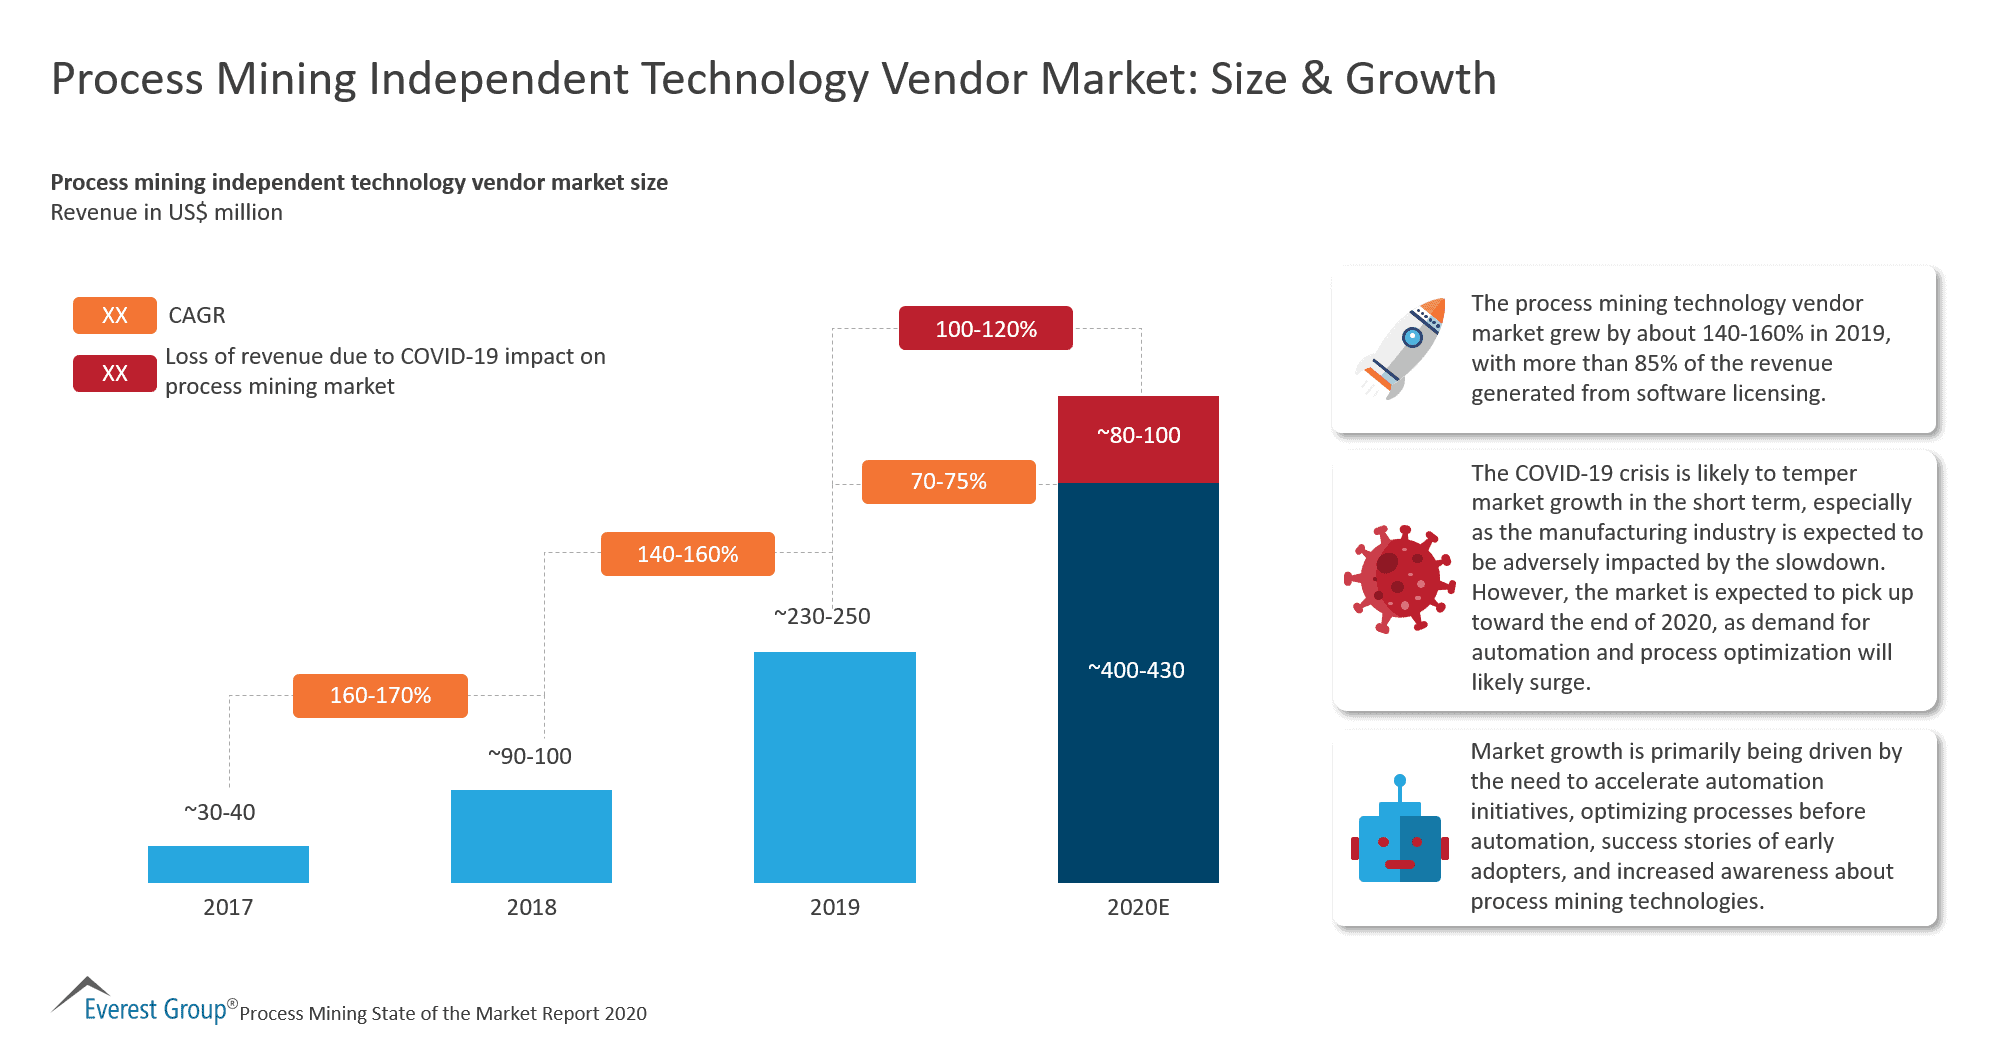 Process Mining Independent Technology Vendor Market - Size & Growth